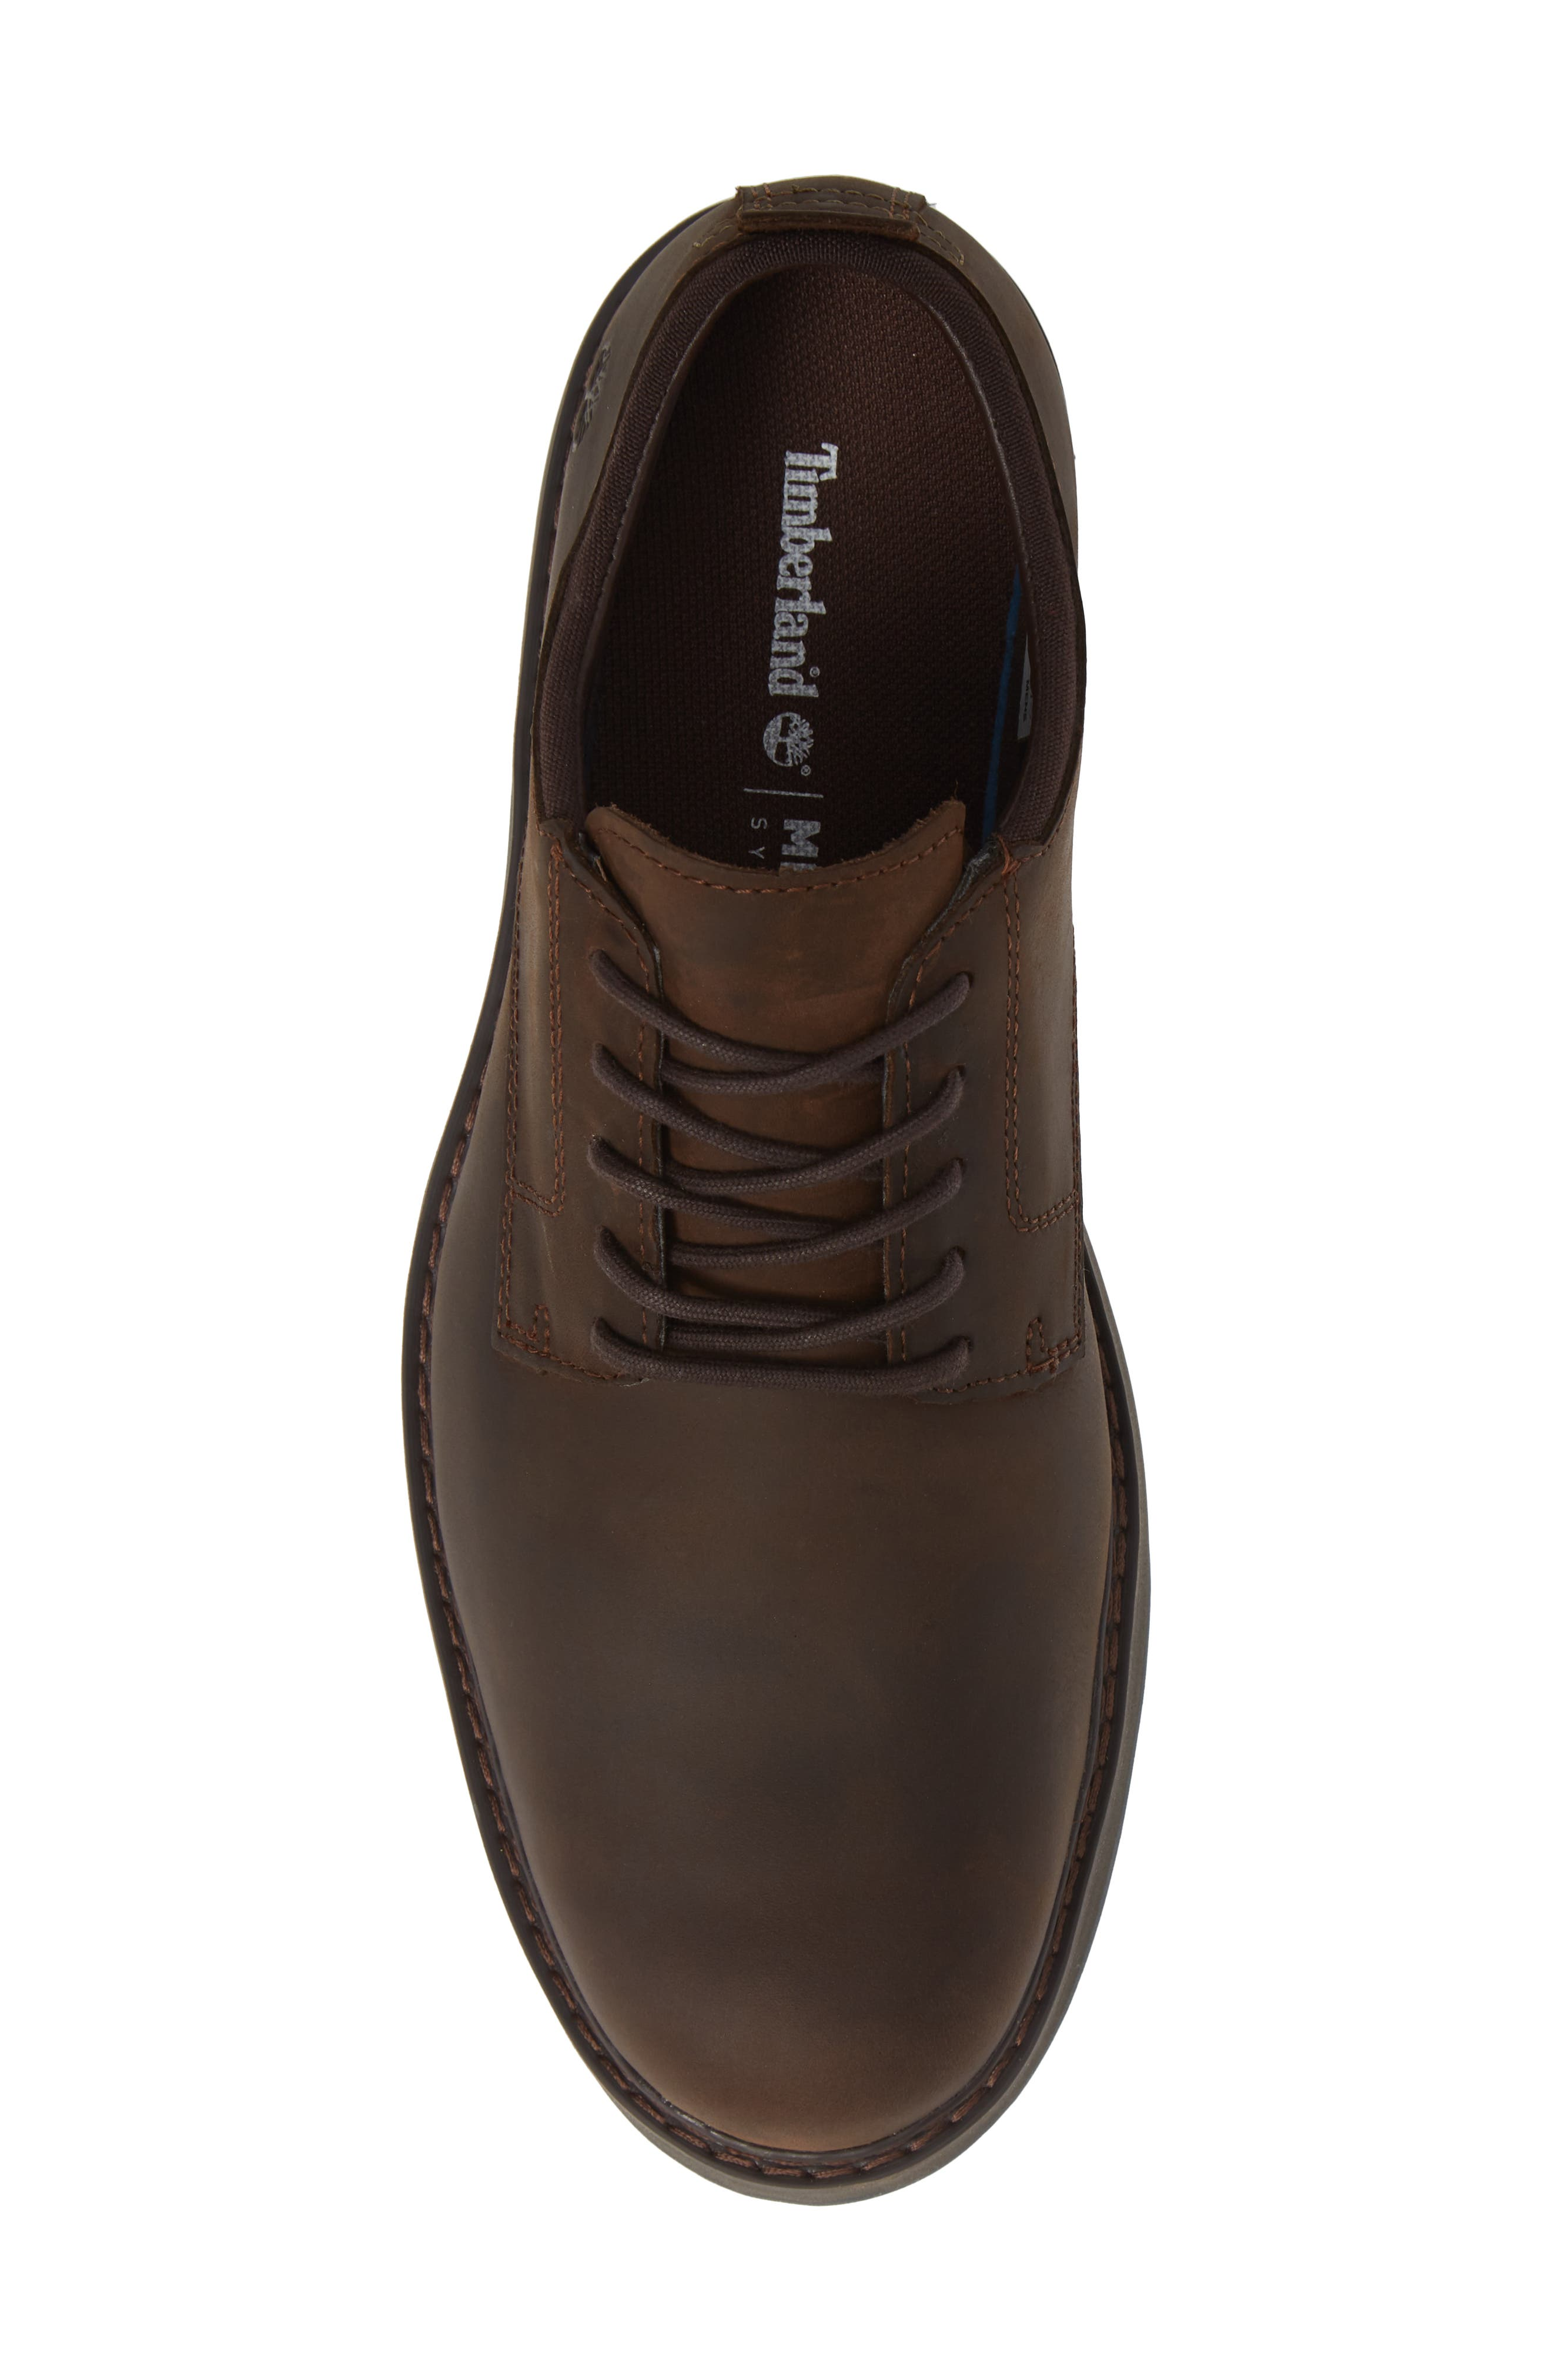 Squall Canyon Waterproof Plain Toe Derby,                             Alternate thumbnail 5, color,                             BROWN LEATHER